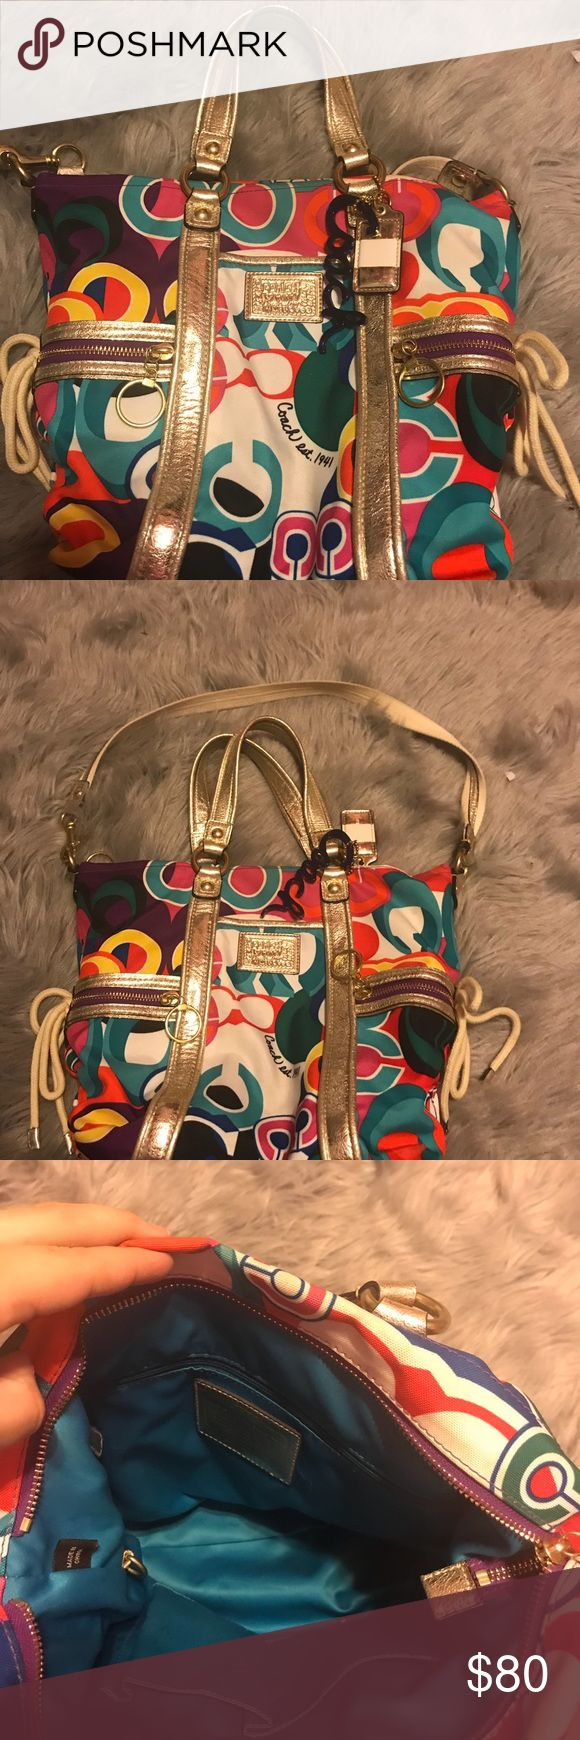 Coach poppy purse Coach poppy purse, re posh due to it not being big enough for my liking. I am not sure about the dimensions, has a small stain in the top corner (as pictured) has been used, but still in good condition. Open to offers. Coach Bags Crossbody Bags